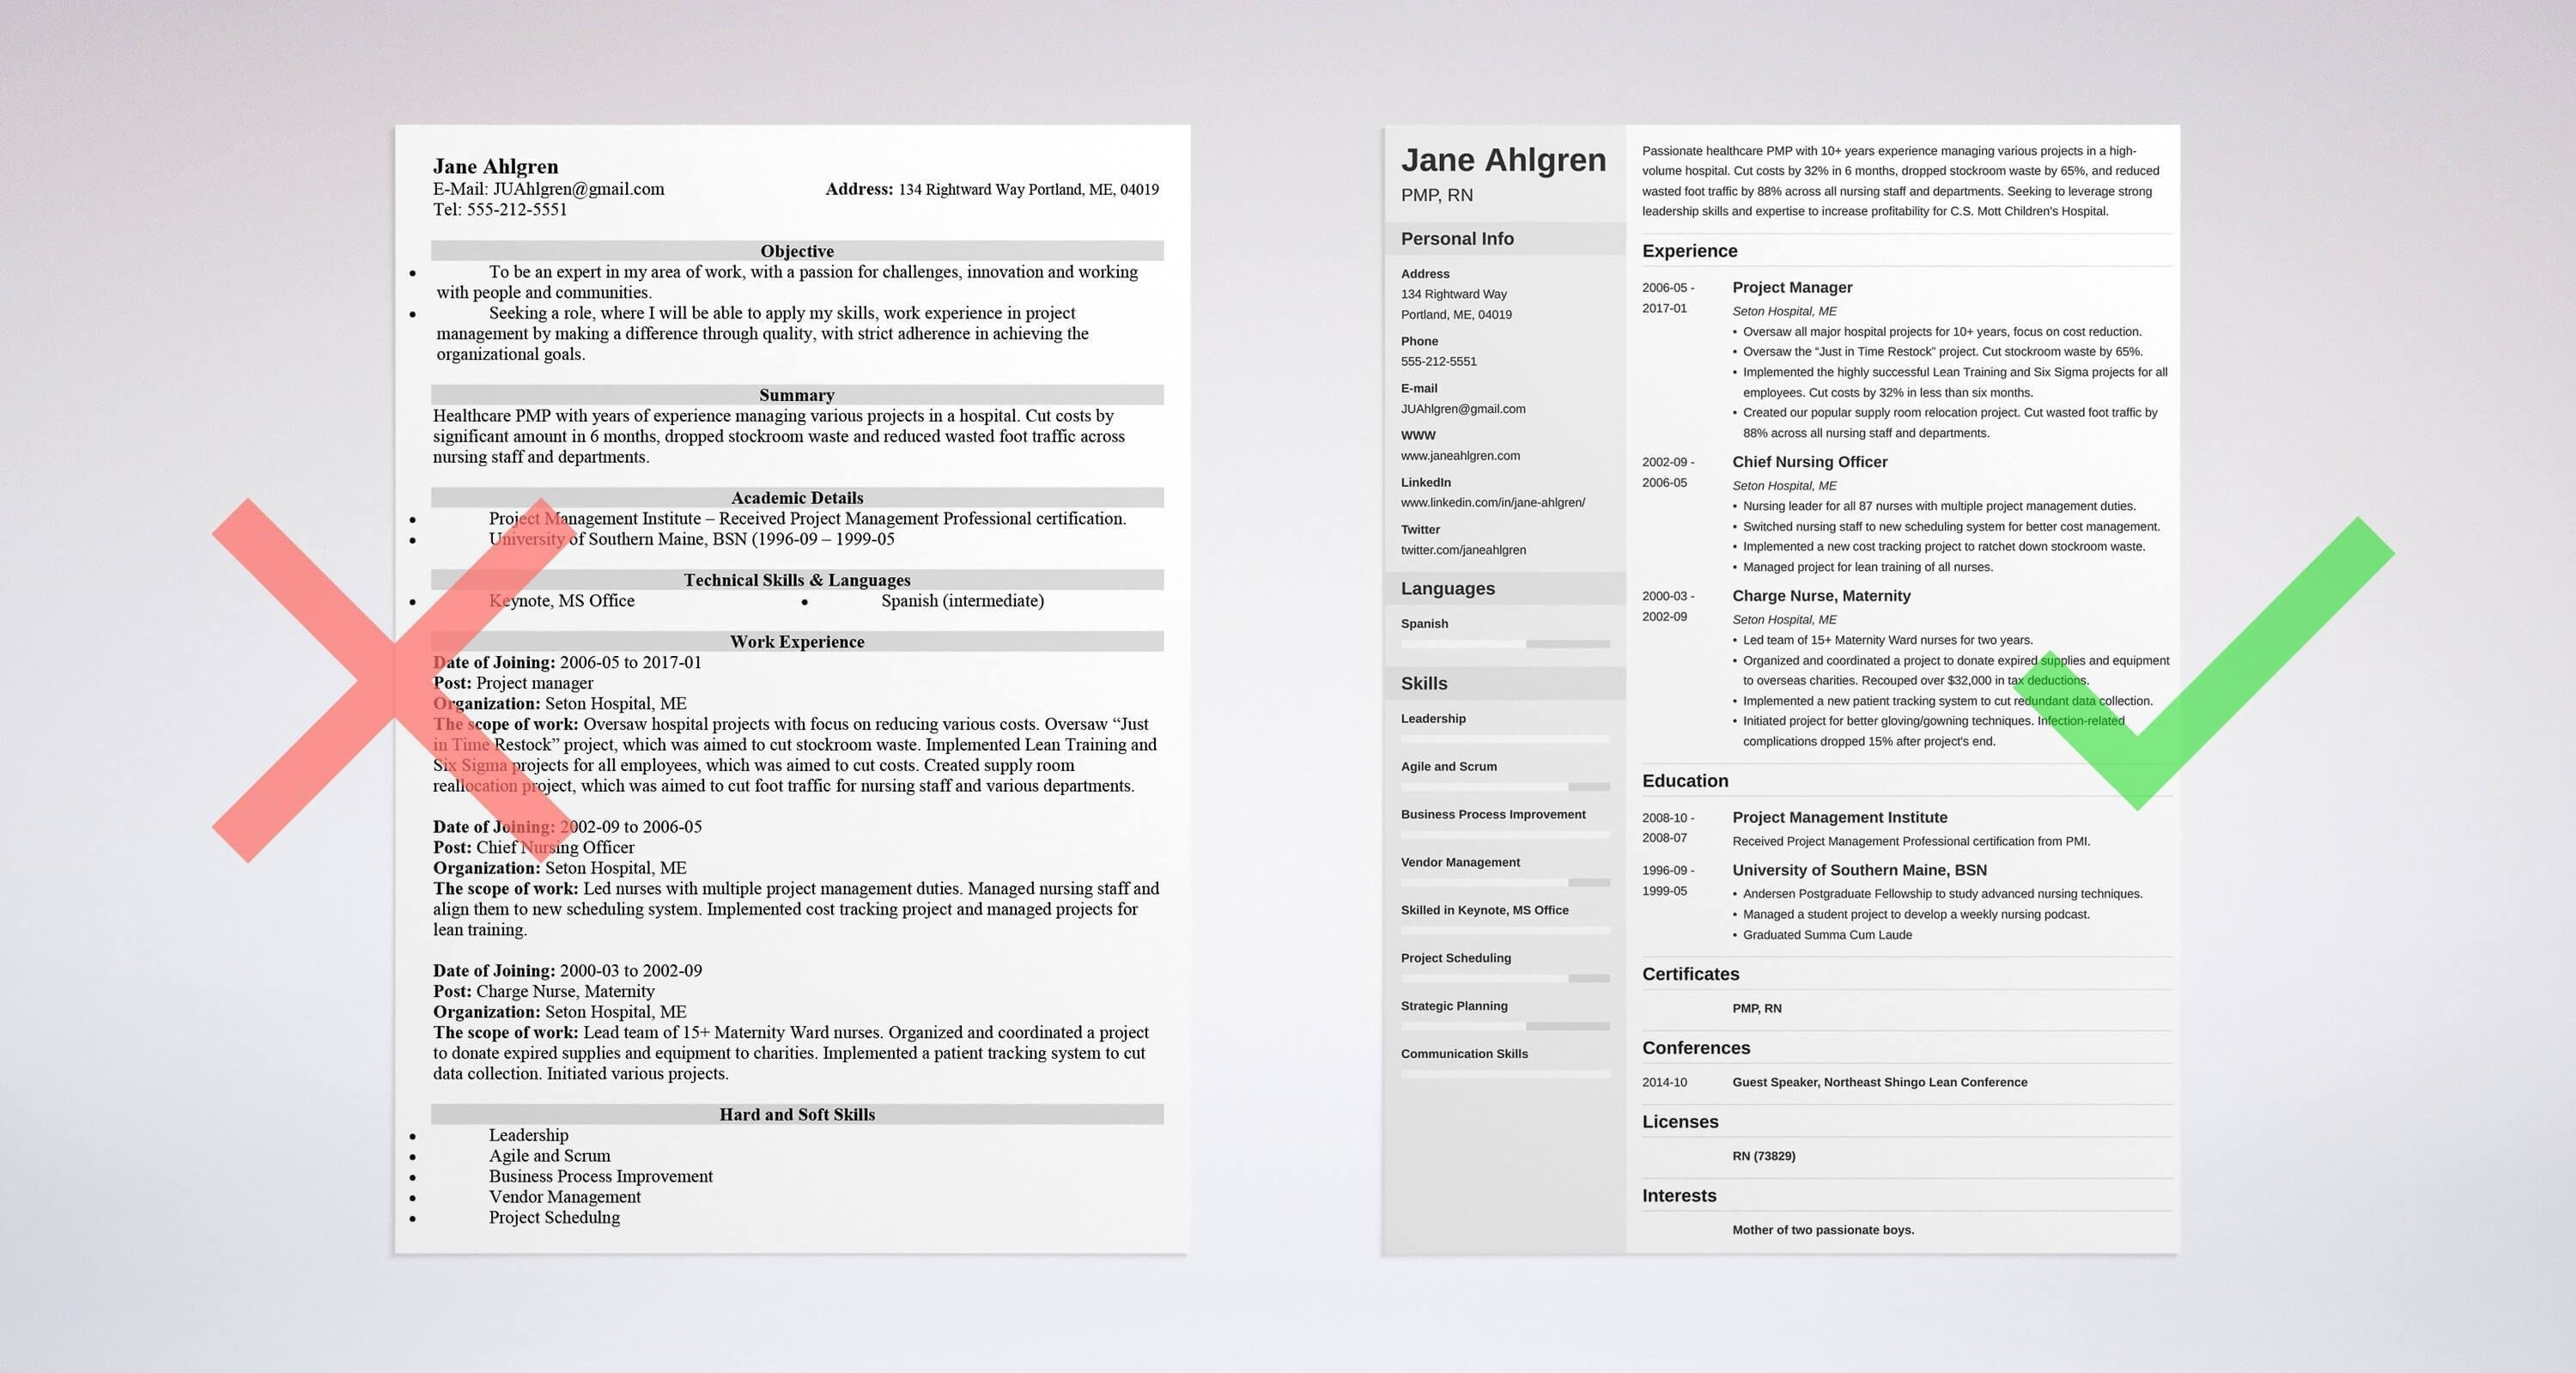 Good Reverse_Chronological_Resume_Template